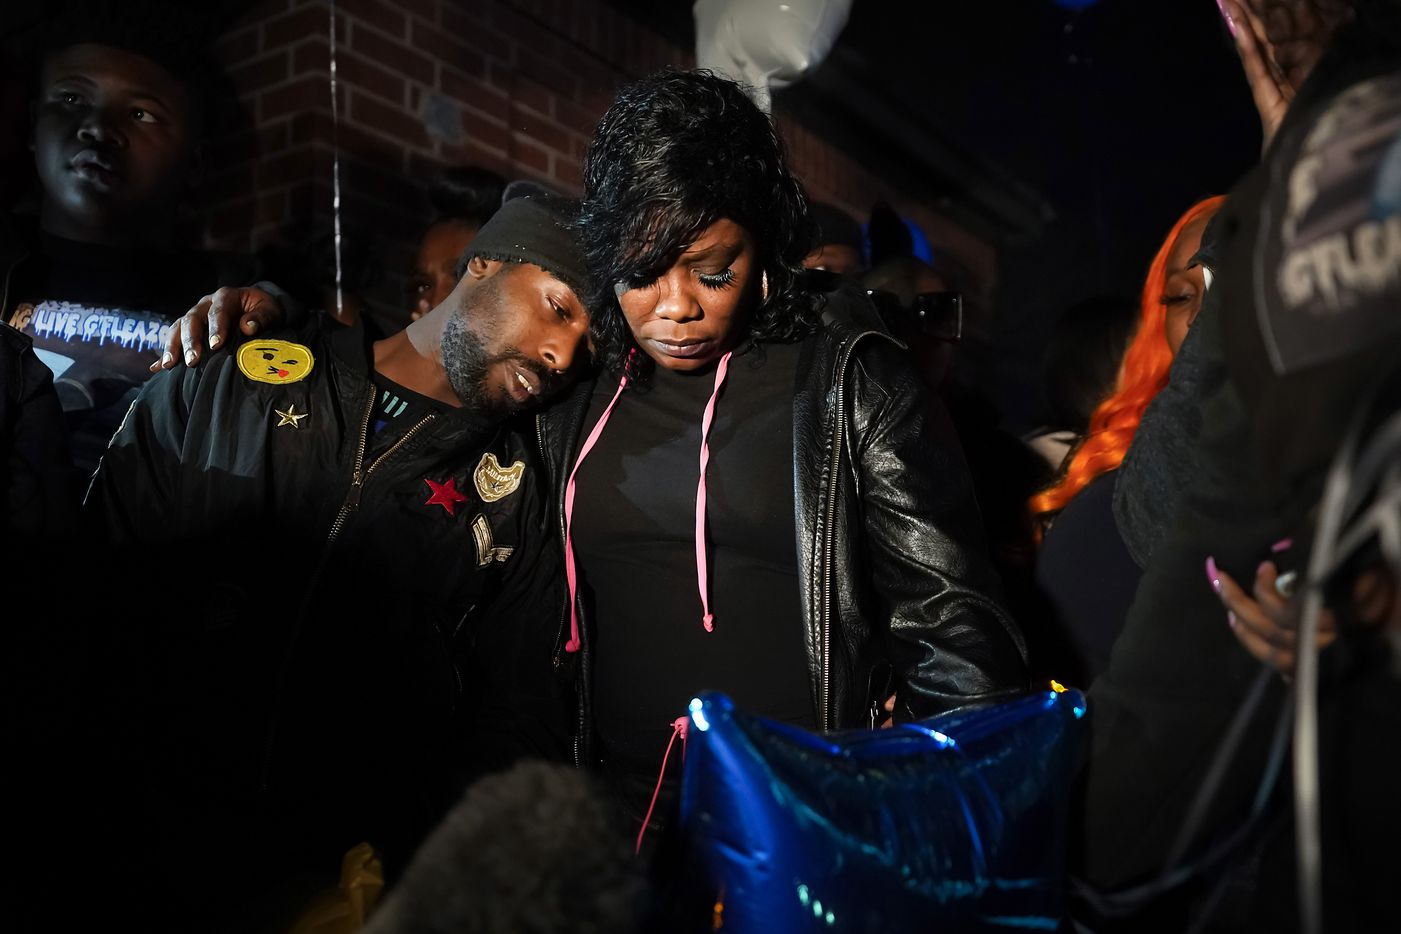 """Monique Mitchell (center) is consoled during a vigil for her son Marc """"Flea"""" Strickland, an 18-year-old victim of a shooting at Dallas ISD basketball game, at Bushman Park on Sunday, Jan. 19, 2020."""